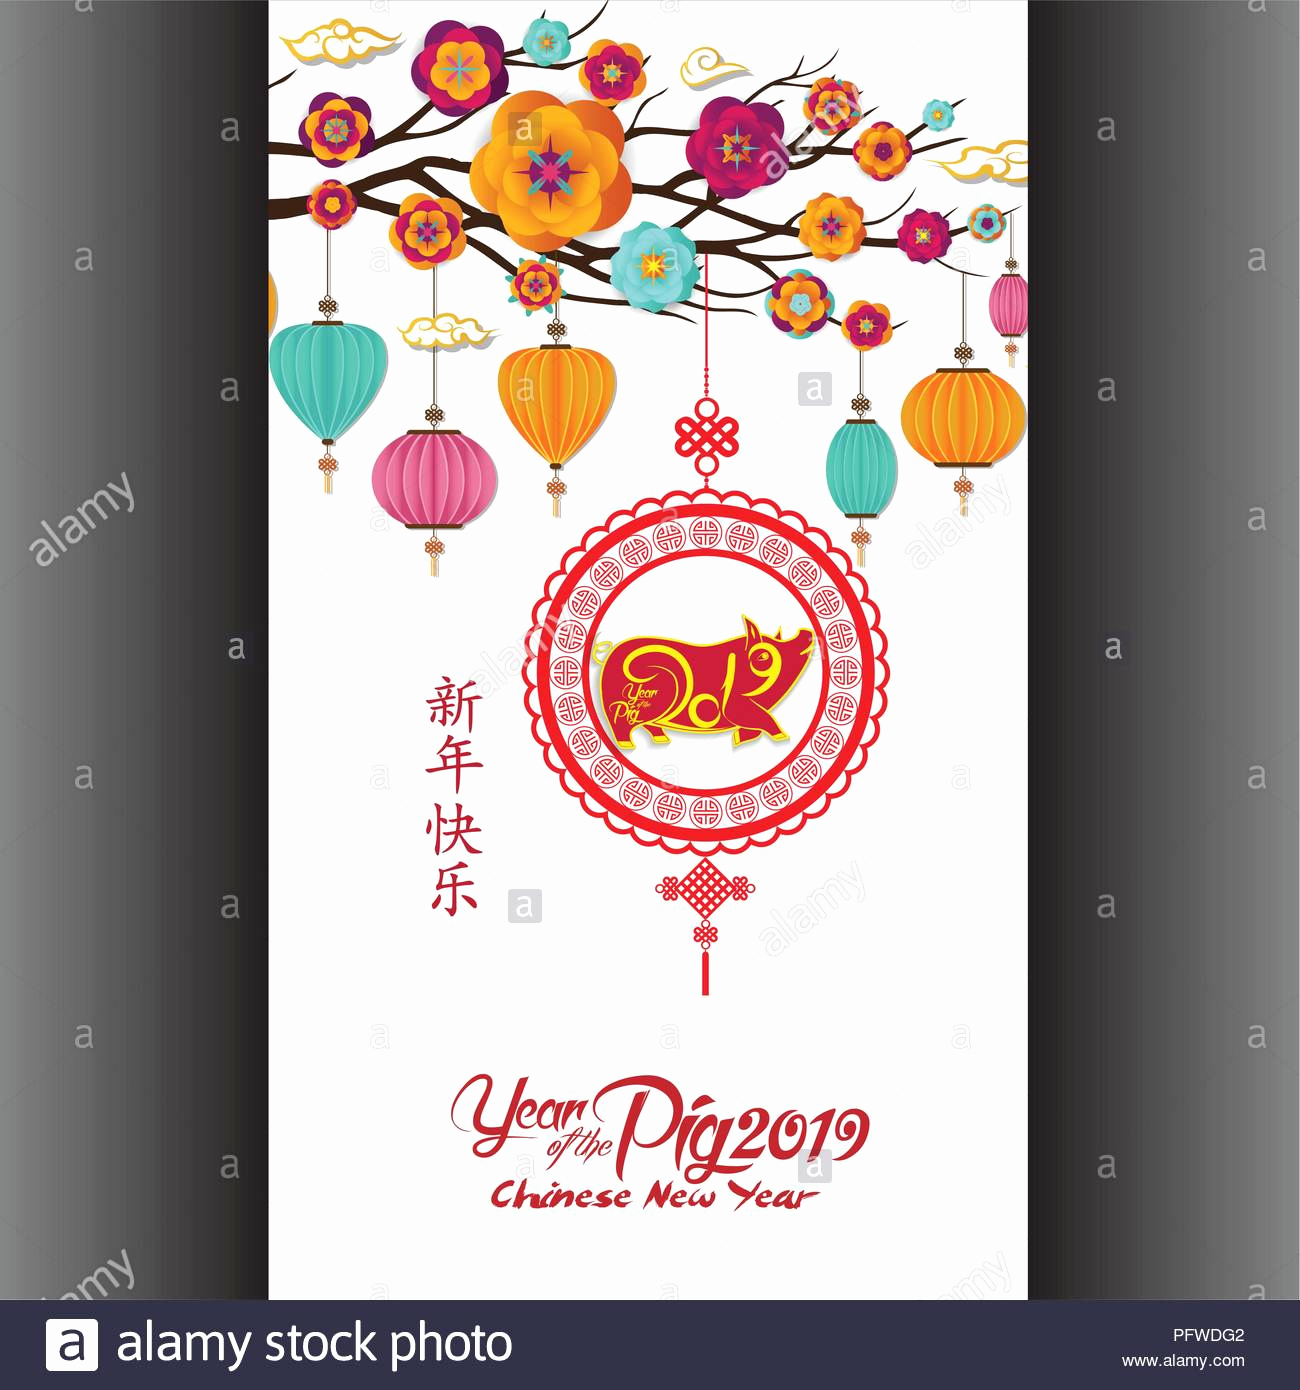 New Years Invitation 2019 Awesome Creative Chinese New Year 2019 Invitation Cards Year Of